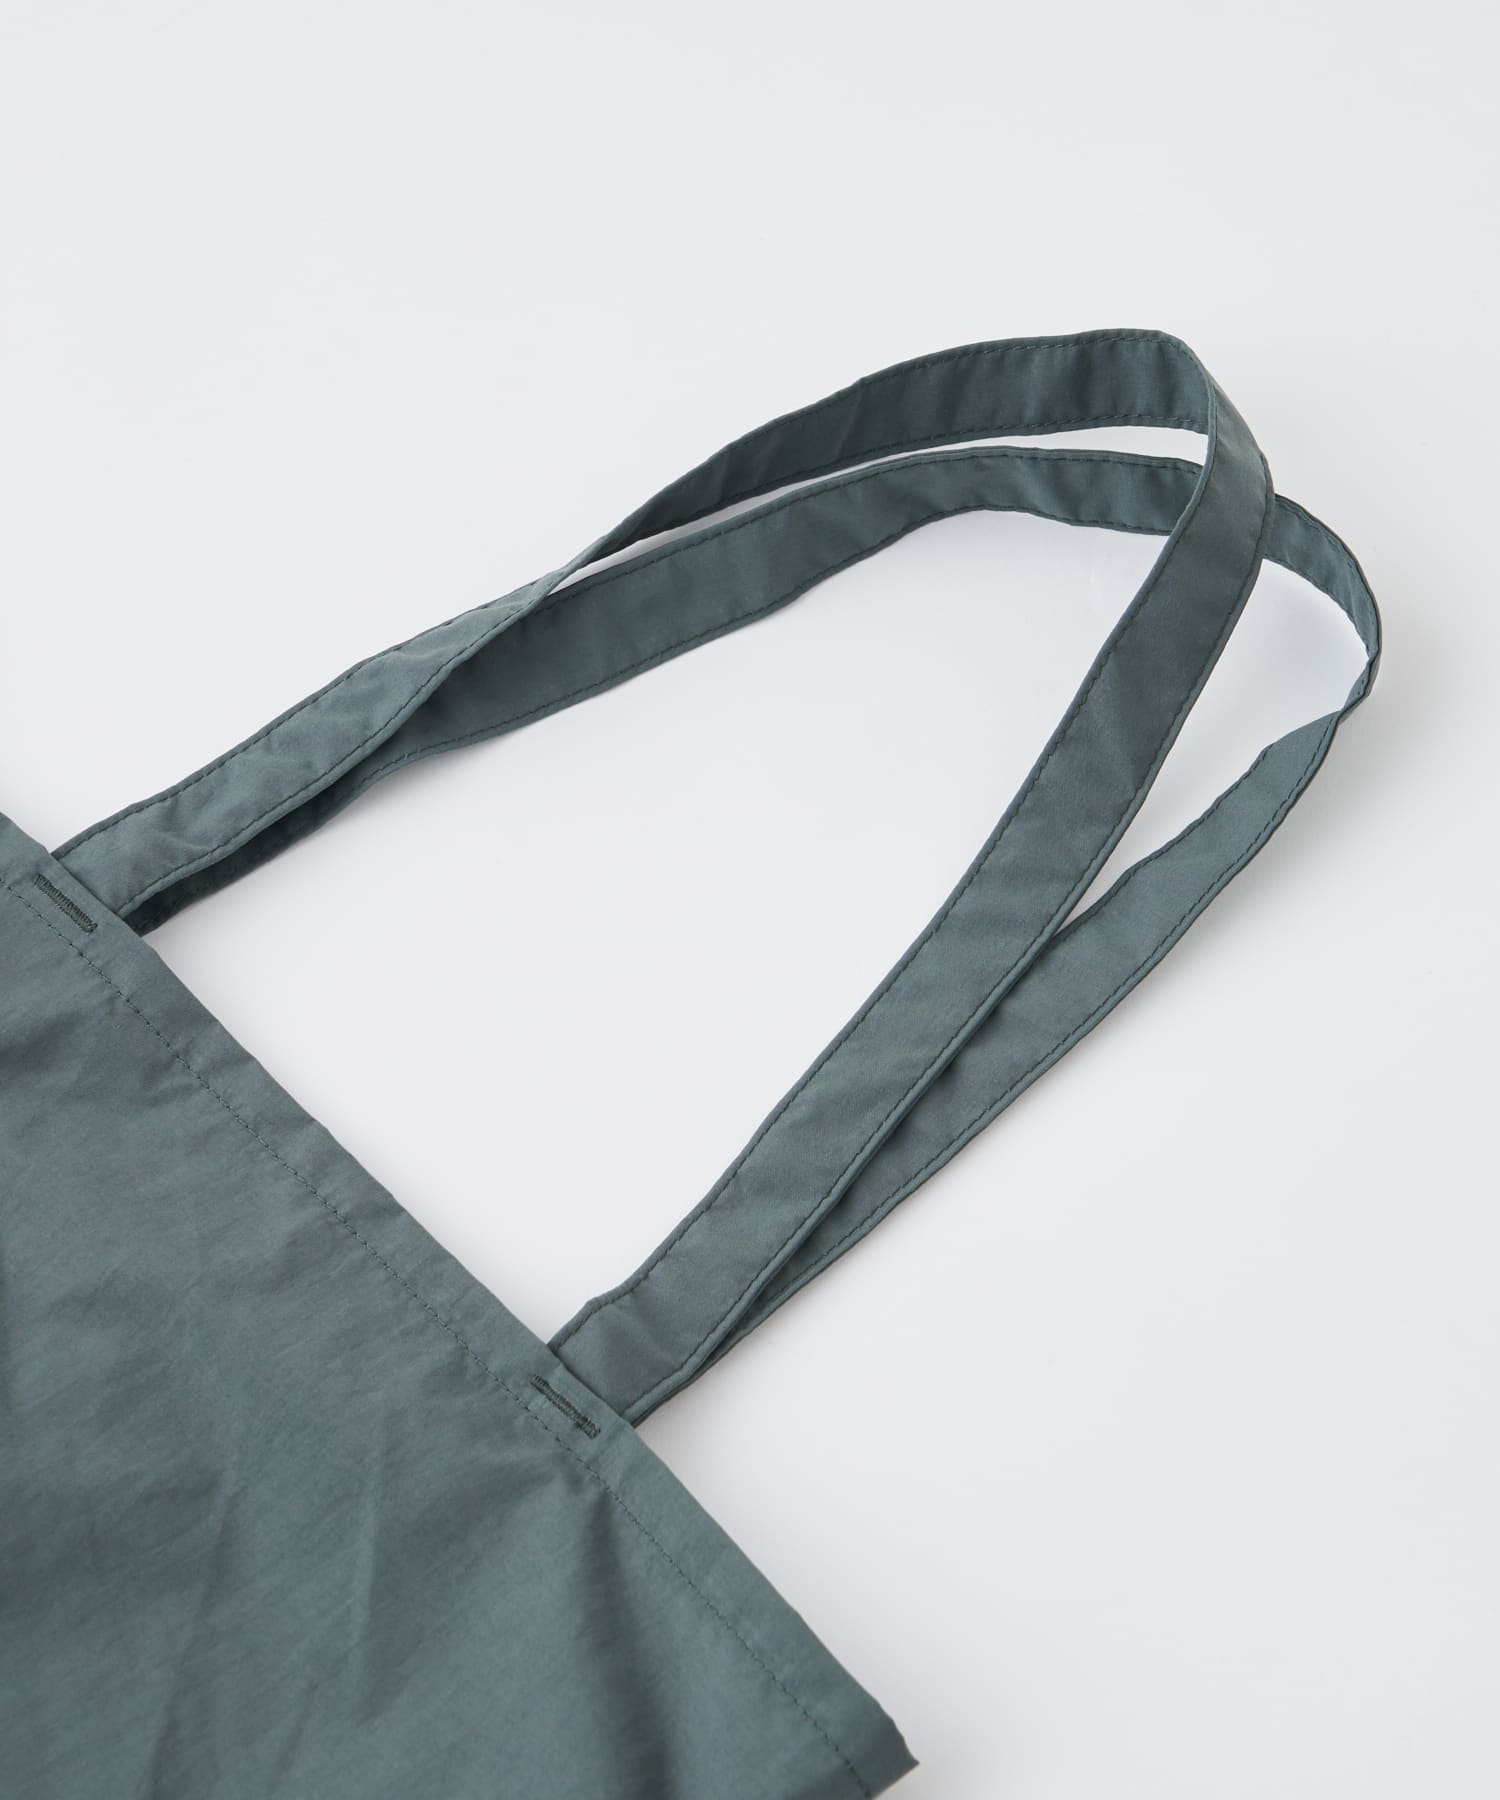 BLOOM&BRANCH(ブルームアンドブランチ) KaILI / NOT COMPACT ECOBAG